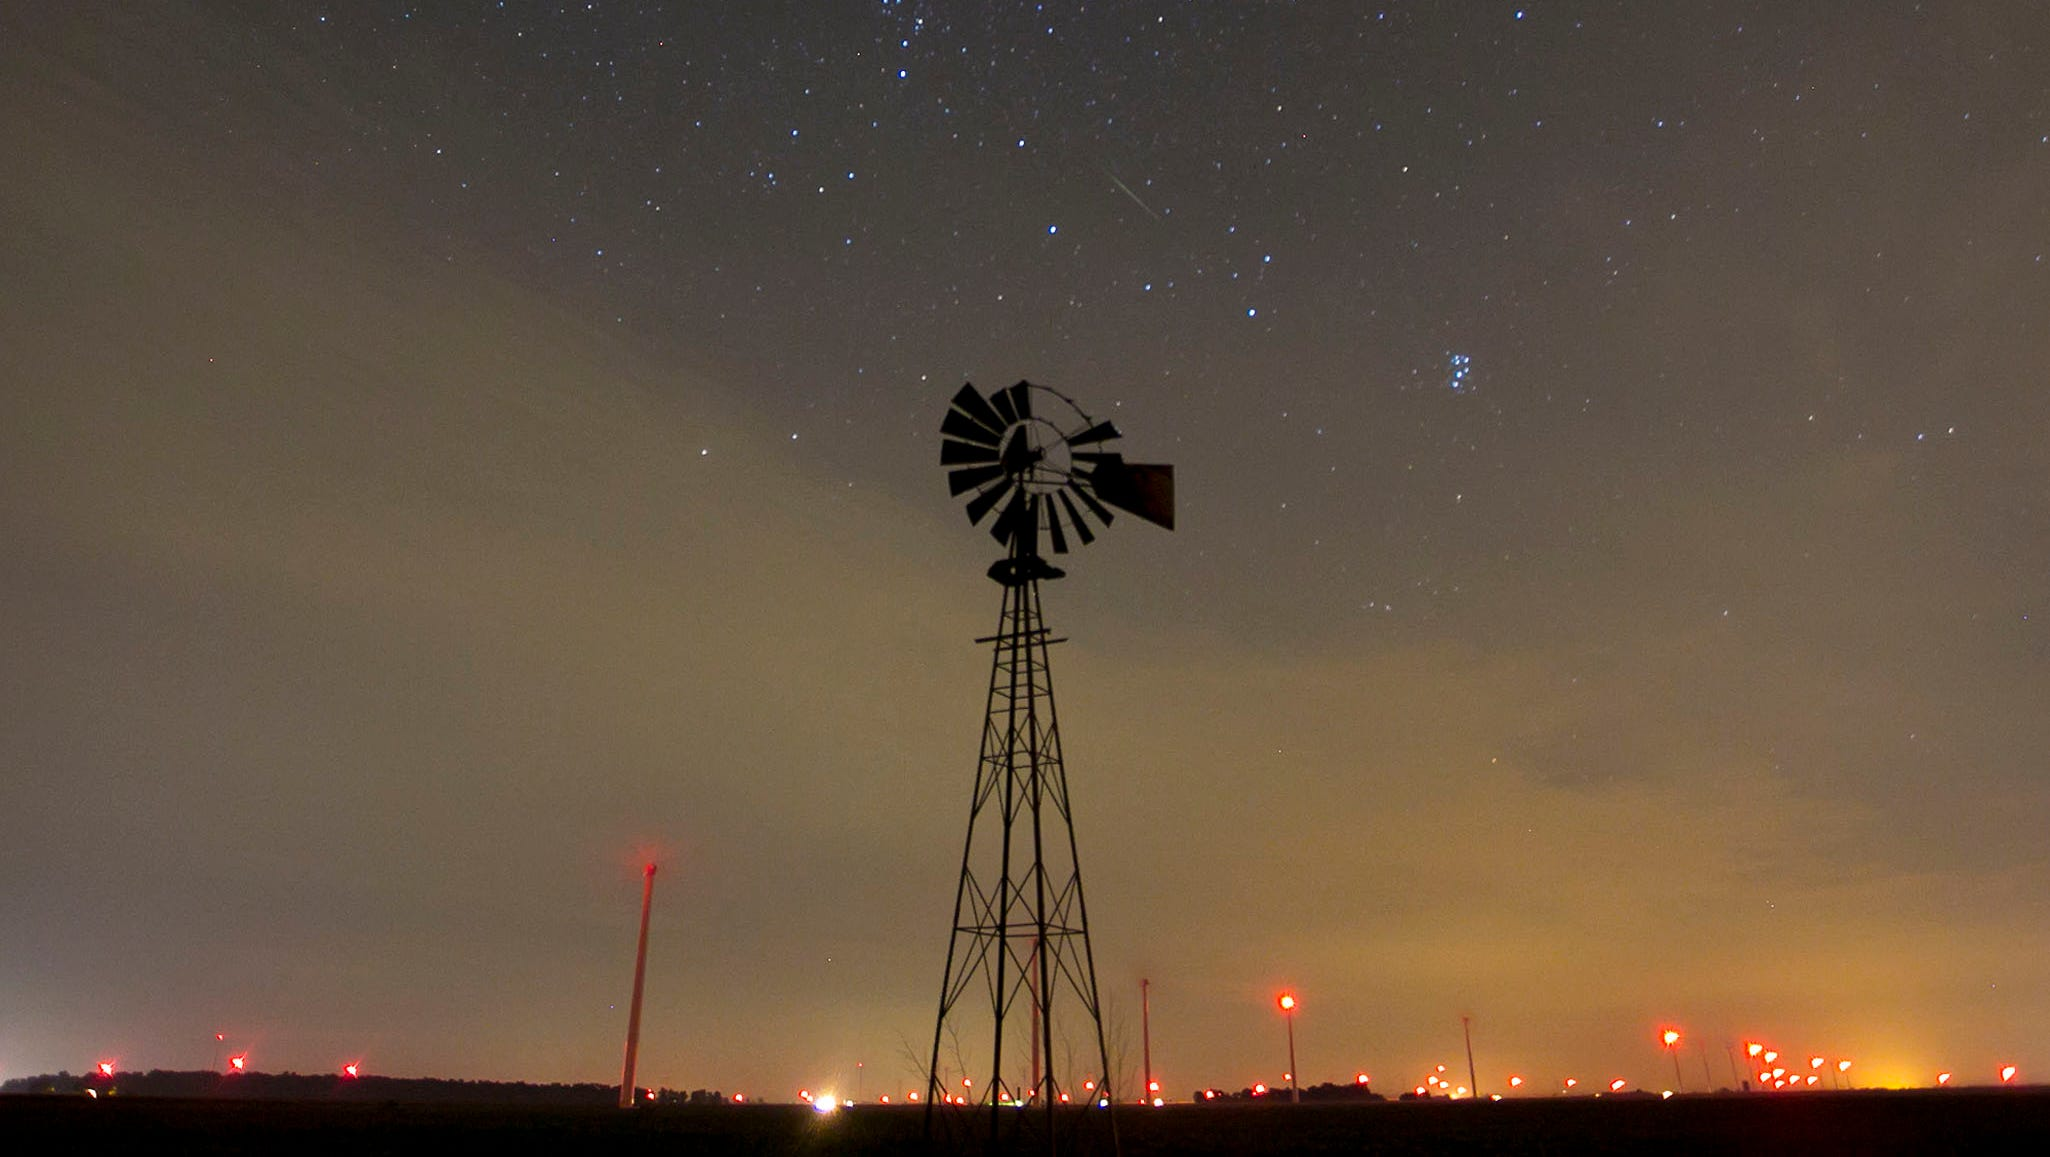 A meteor streaks above an old windmill near Brookston, Ind.